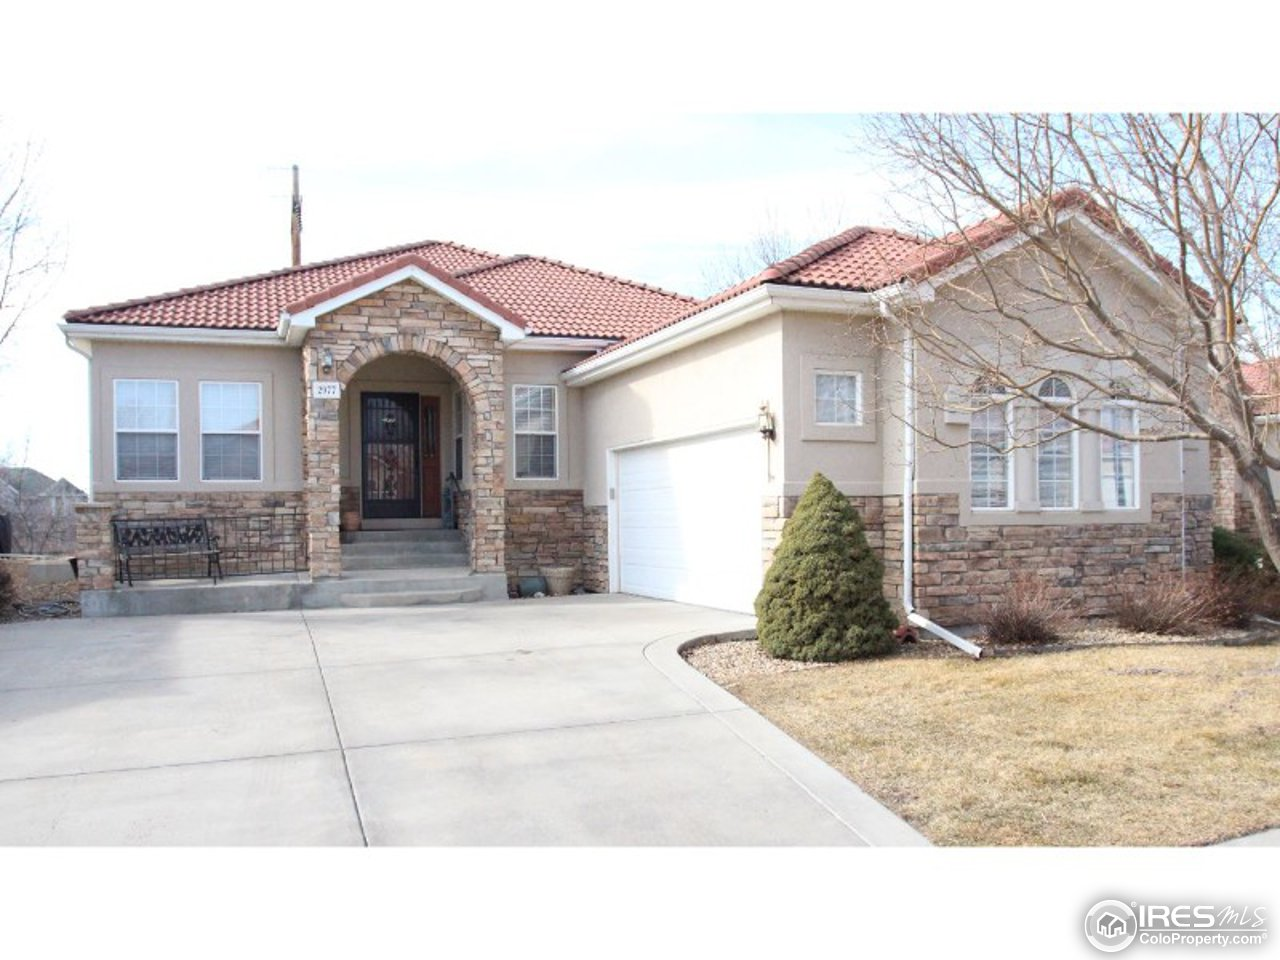 2977 Bellmeade Way Loveland Home Listings - Team Cook Real Estate